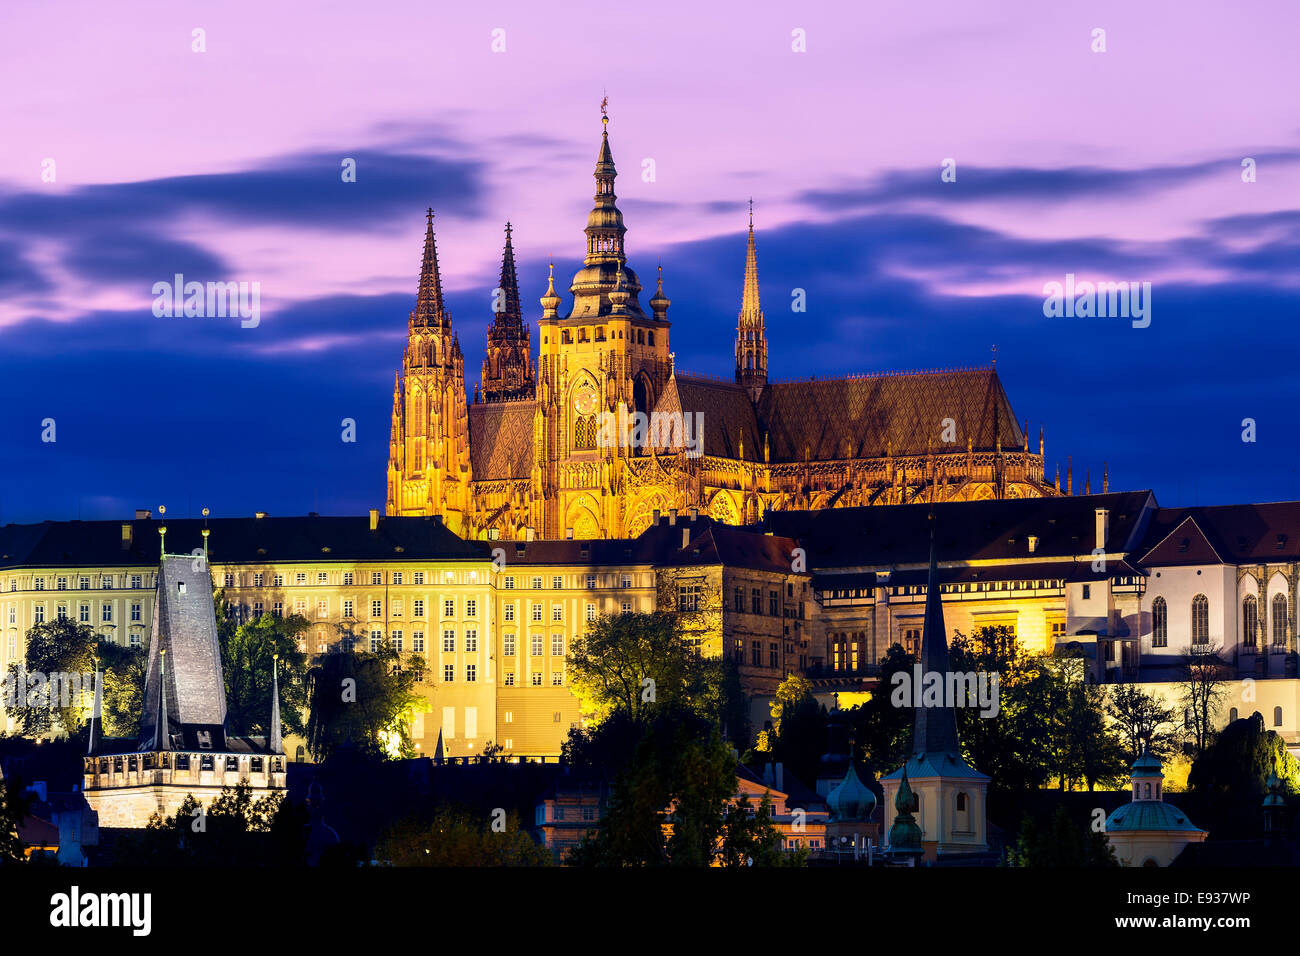 The Castle And Cathedral At Night